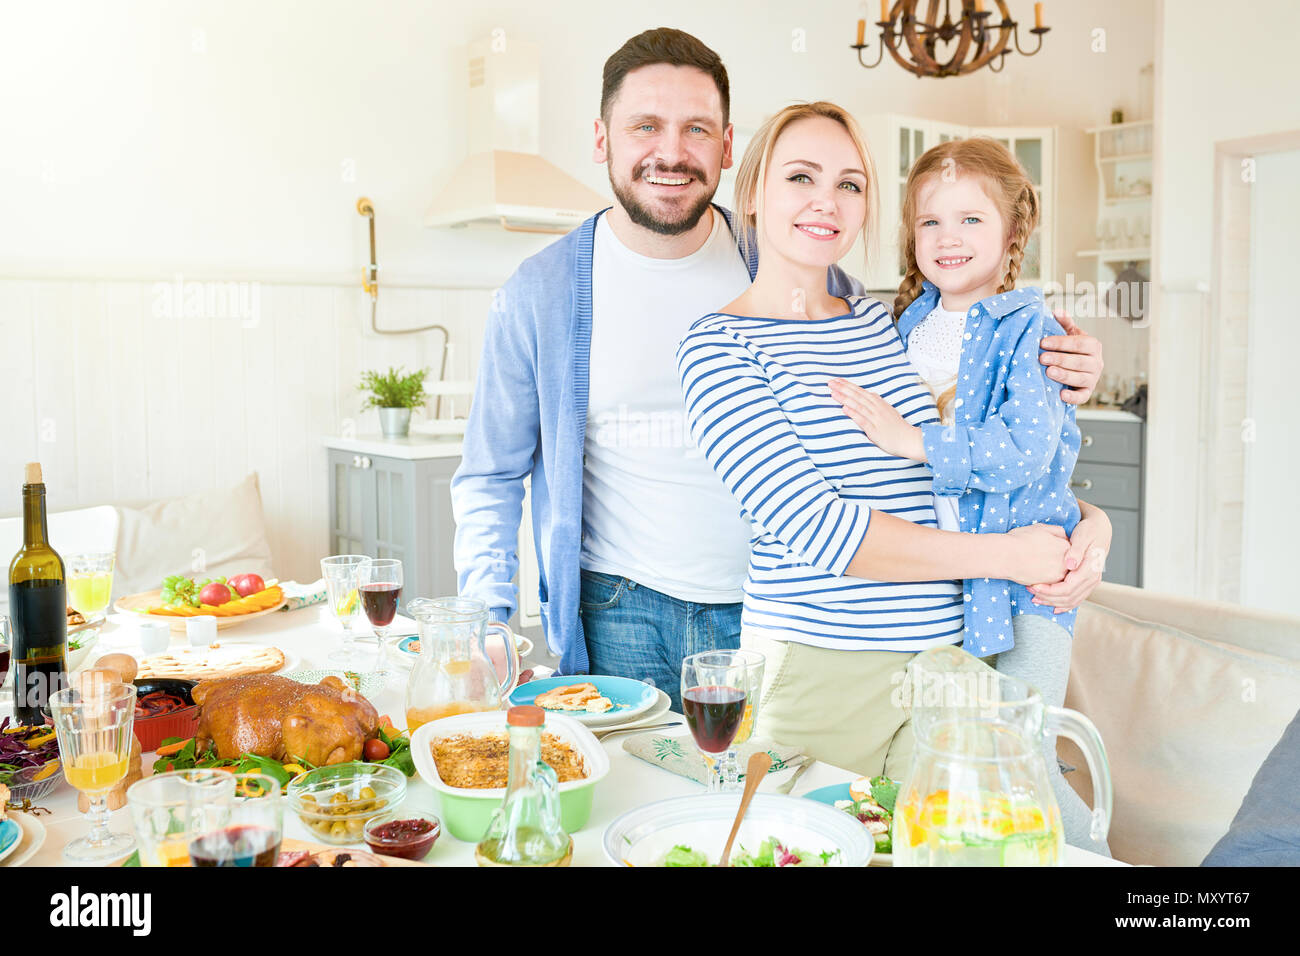 Portrait of happy young family  with cute little girl standing at festive dinner table with delicious dishes and smiling at camera in modern apartment - Stock Image